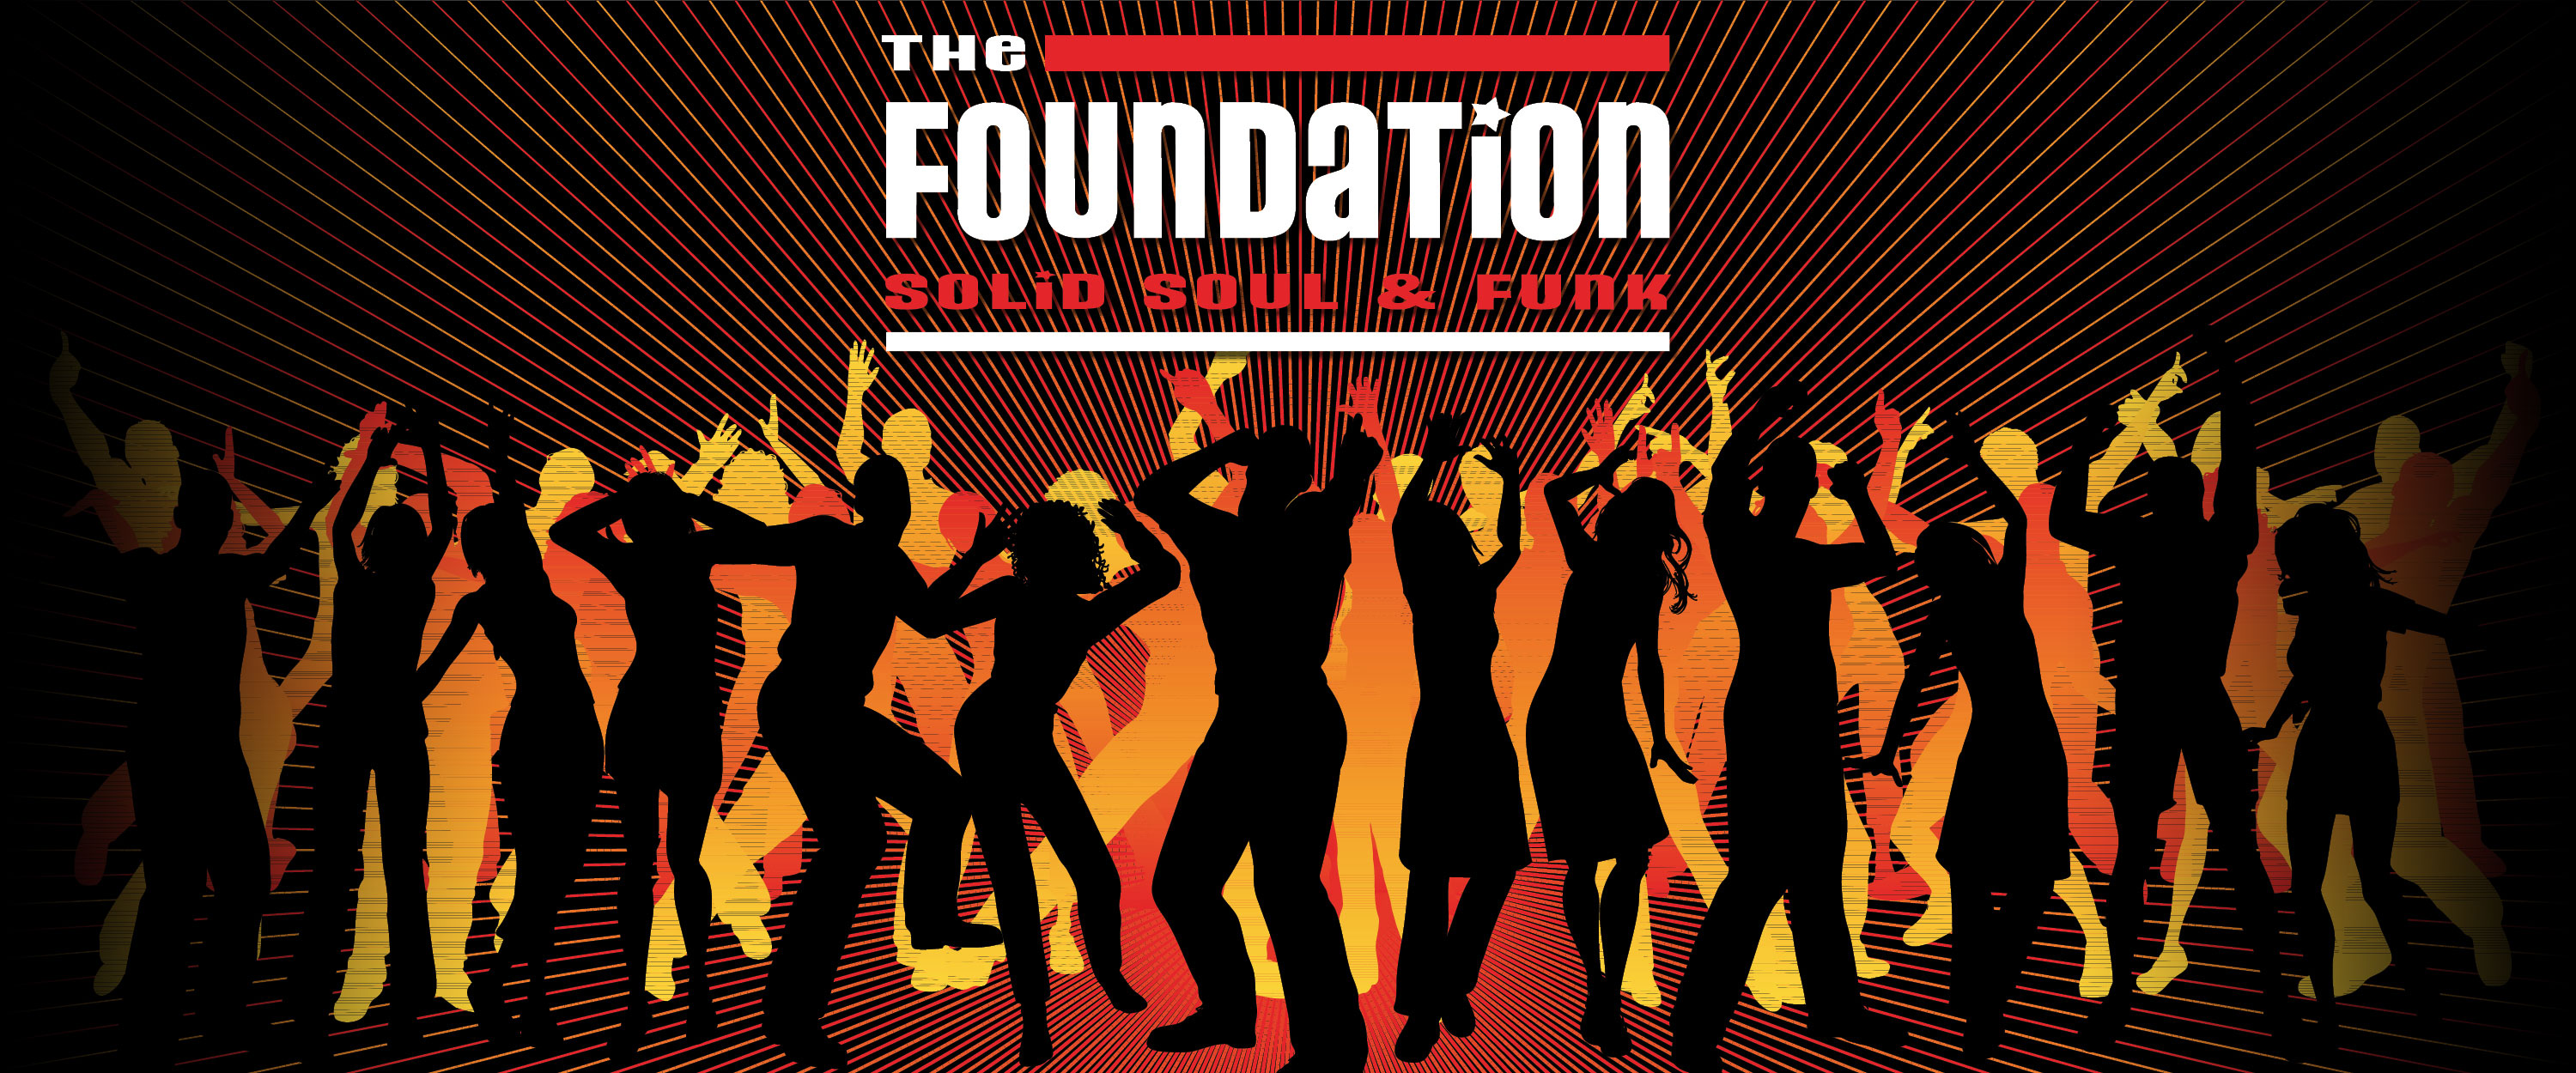 Funk And Soulband THE FOUNDATION München Munich